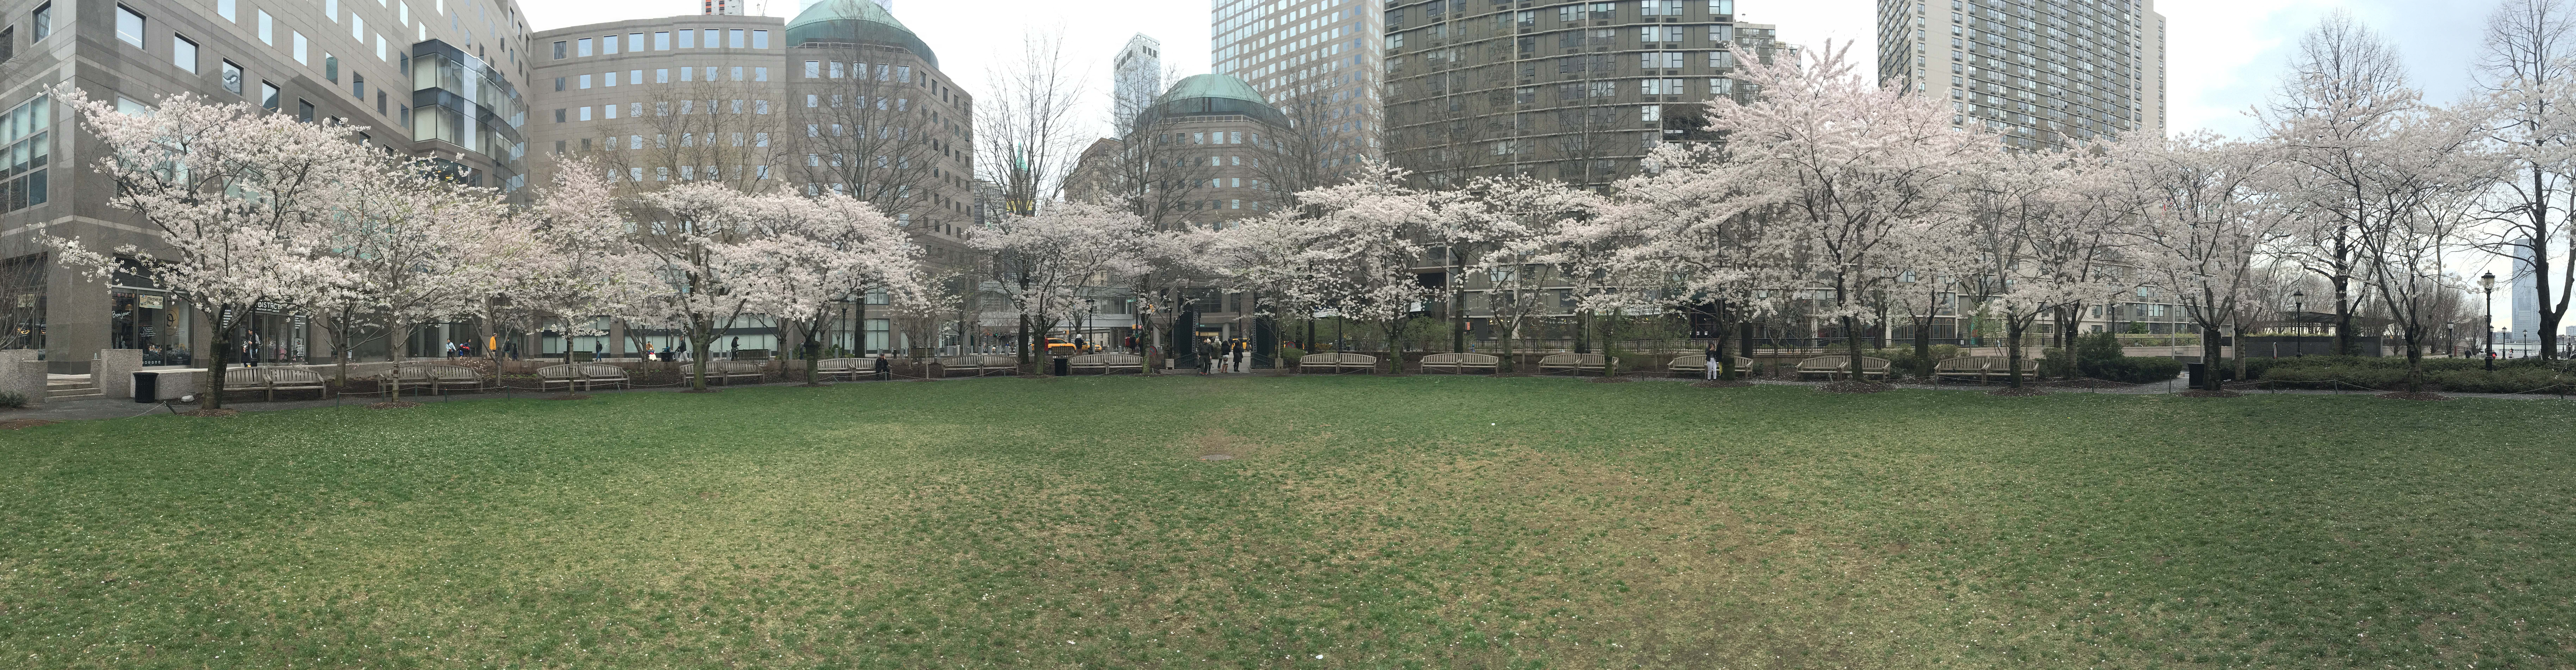 cherry tree circl lawn in bloom 2016